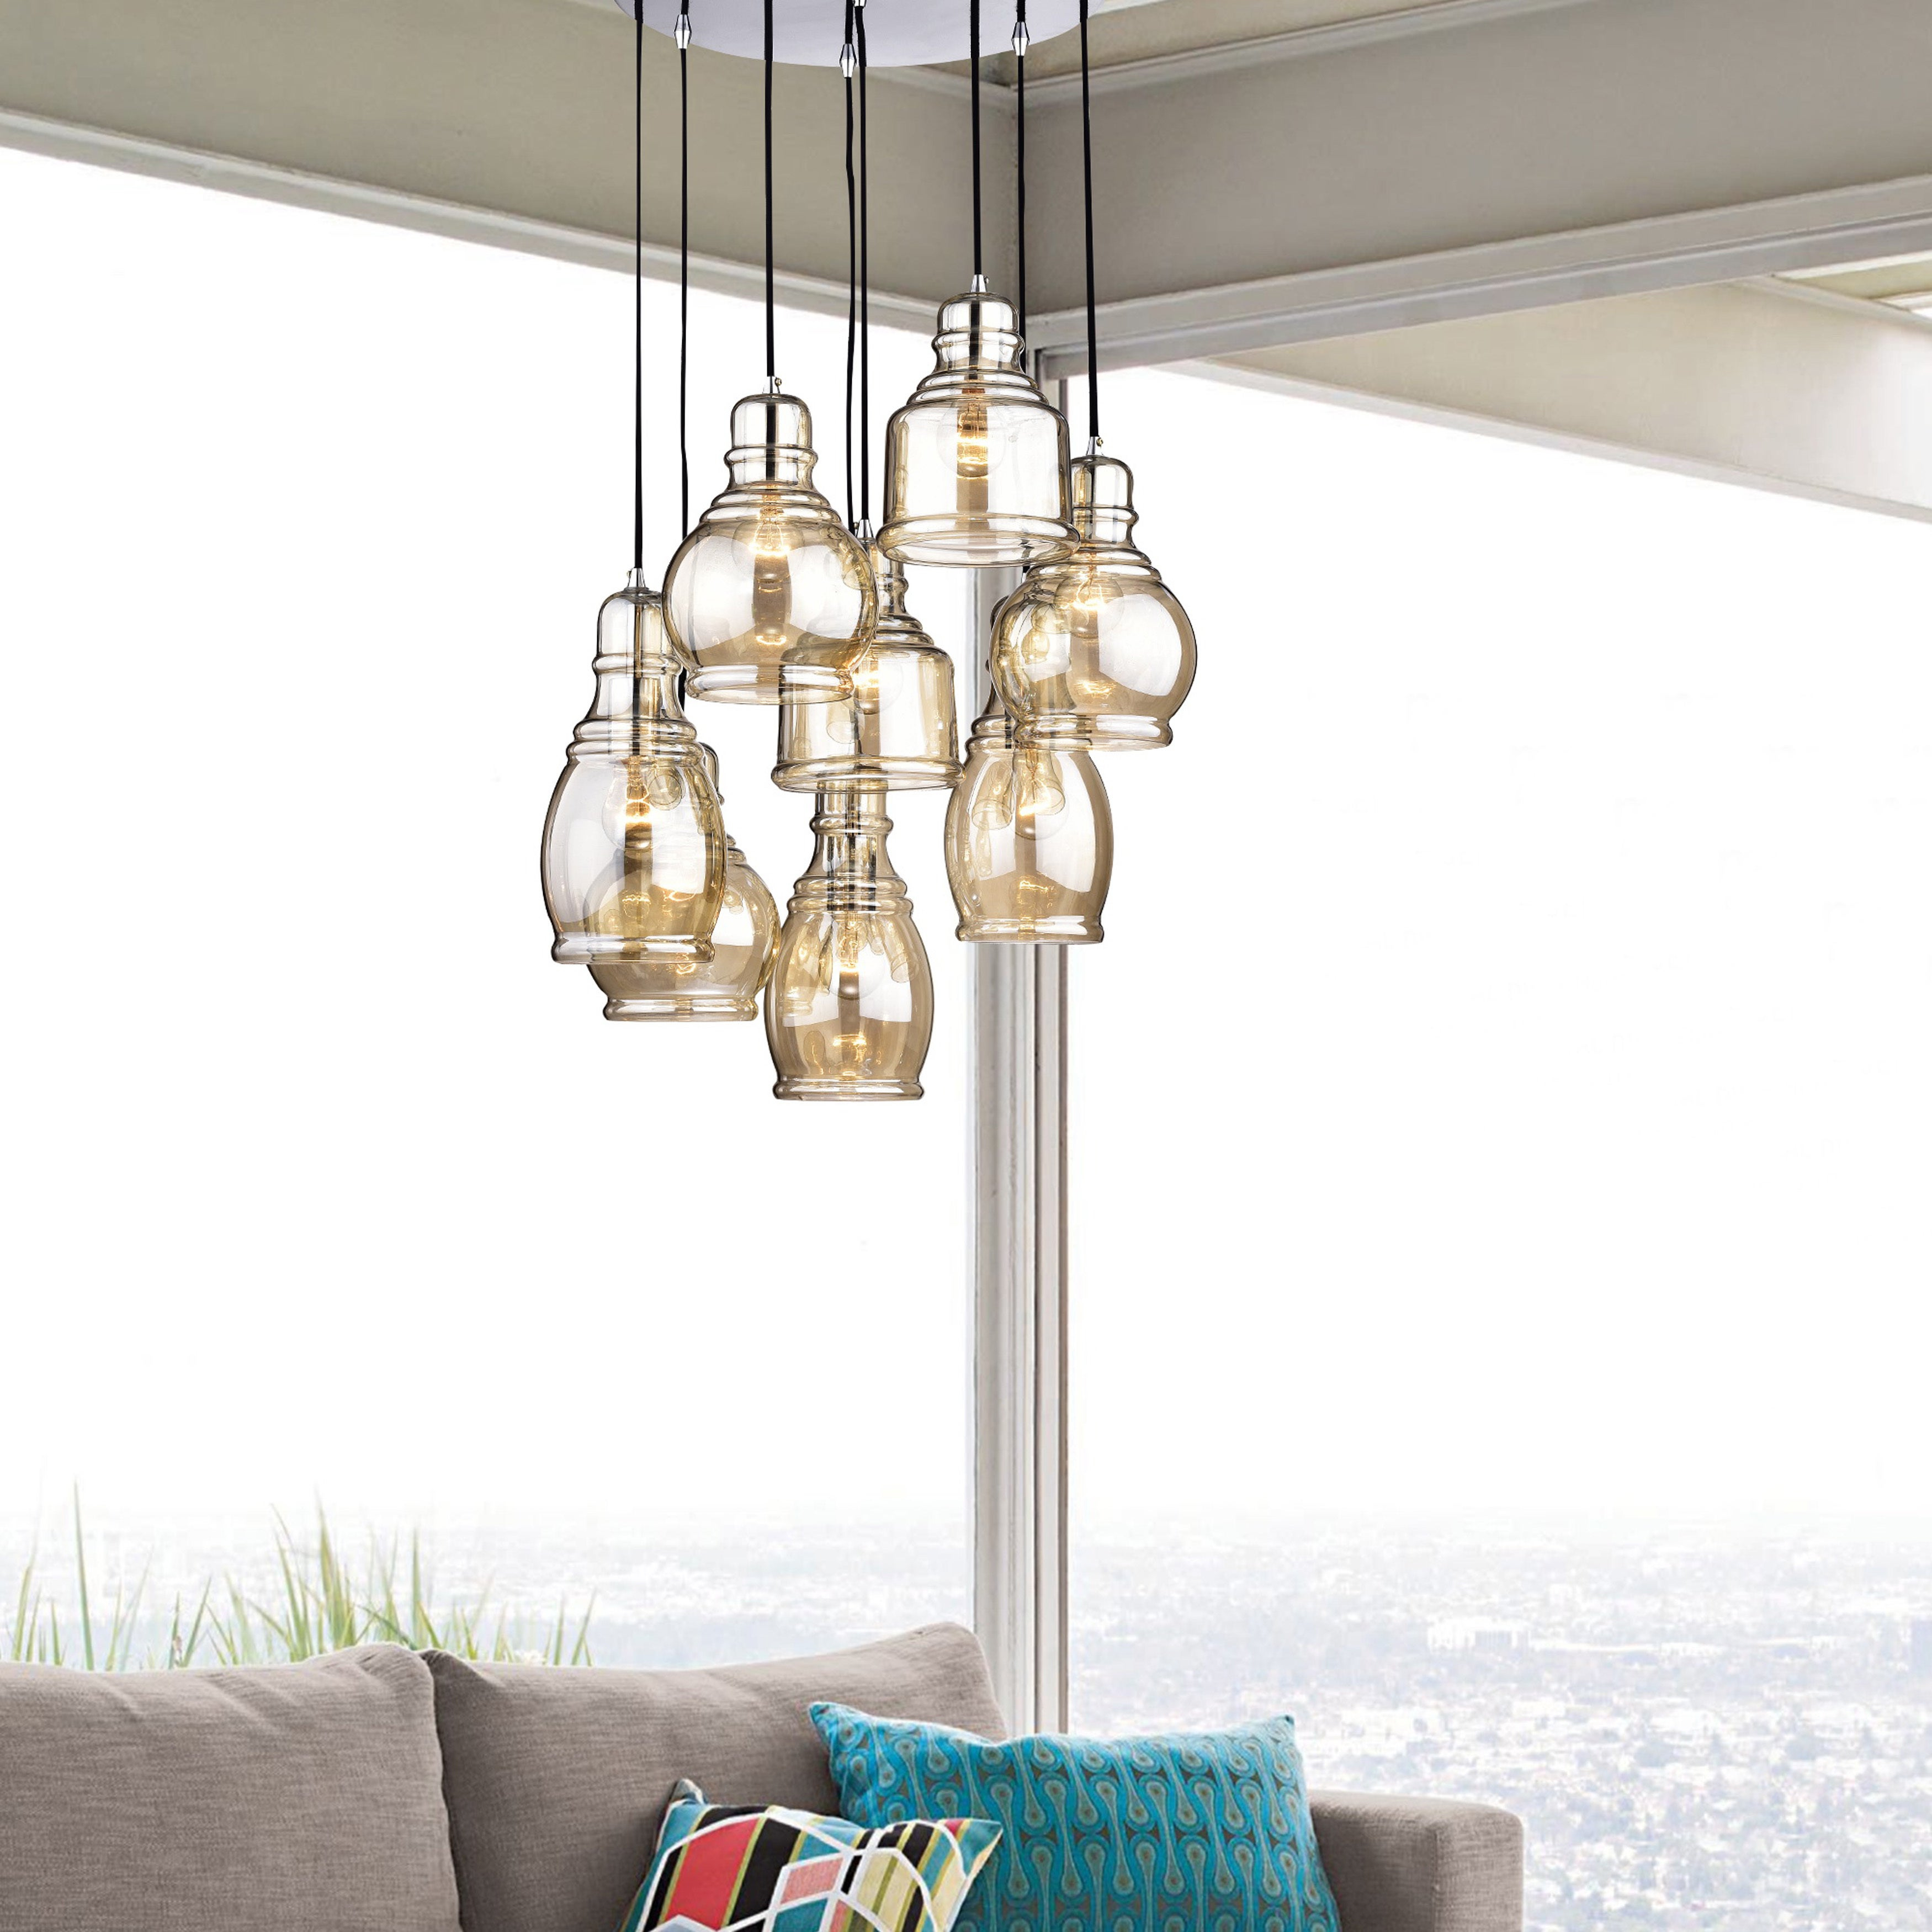 Mariana 8 Light Cognac Glass Cluster Pendant Chandelier With Chrome Finish And Round Base Intended For Pruett Cognac Glass 8 Light Cluster Pendants (View 22 of 30)